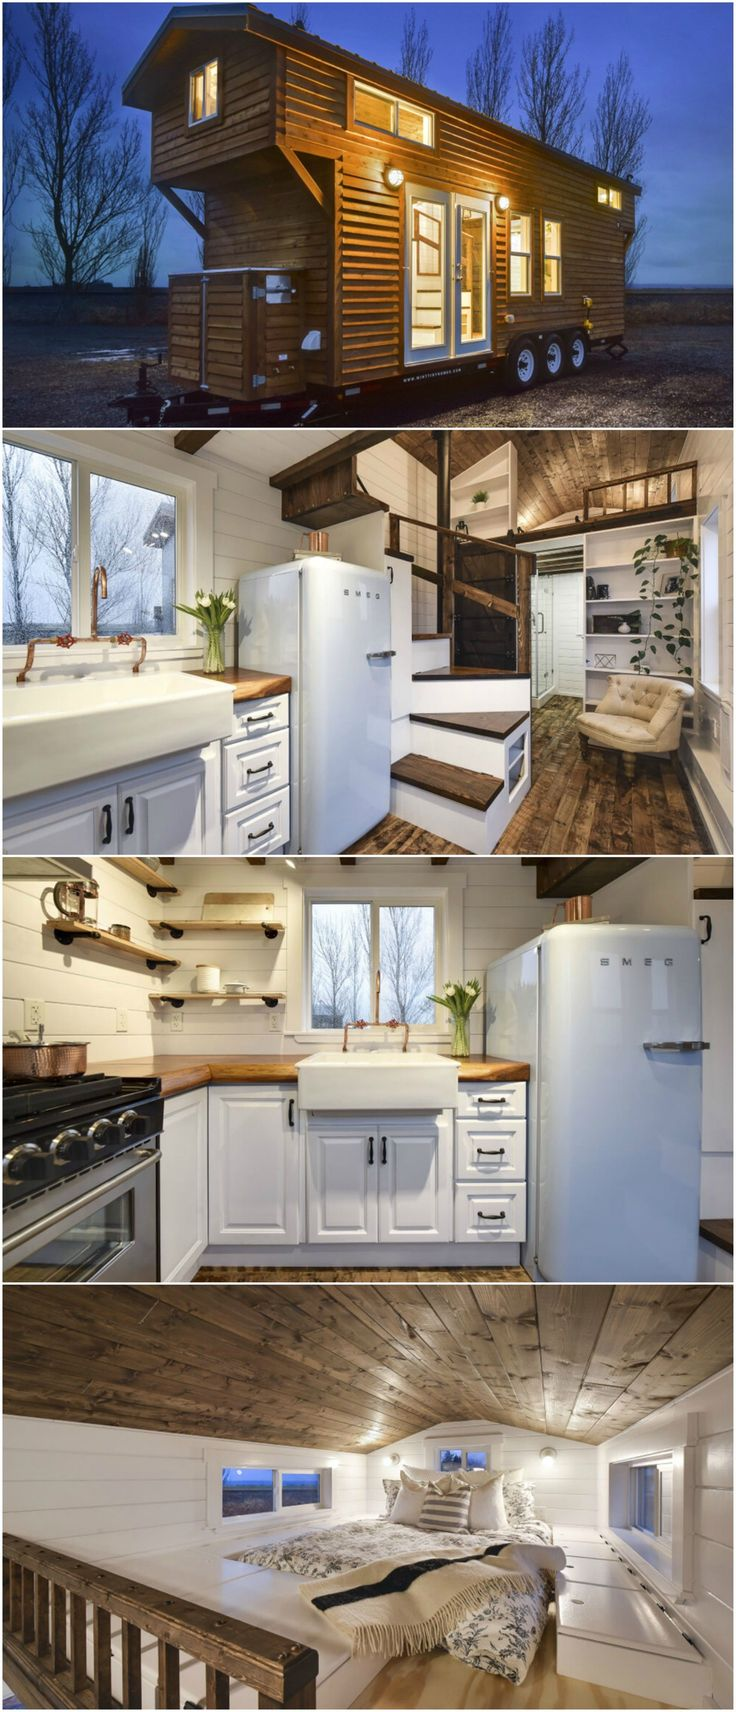 Custom Tiny #4 is a nice tiny house designed and built by Mint Tiny Homes with a rustic modern interior. The kitchen is outfitted with a retro style refrigerator, farmhouse sink with copper pipe faucet, butcher block counters, a freestanding range, and stackable washer and dryer. The exposed beam ceiling adds an extra touch of color.